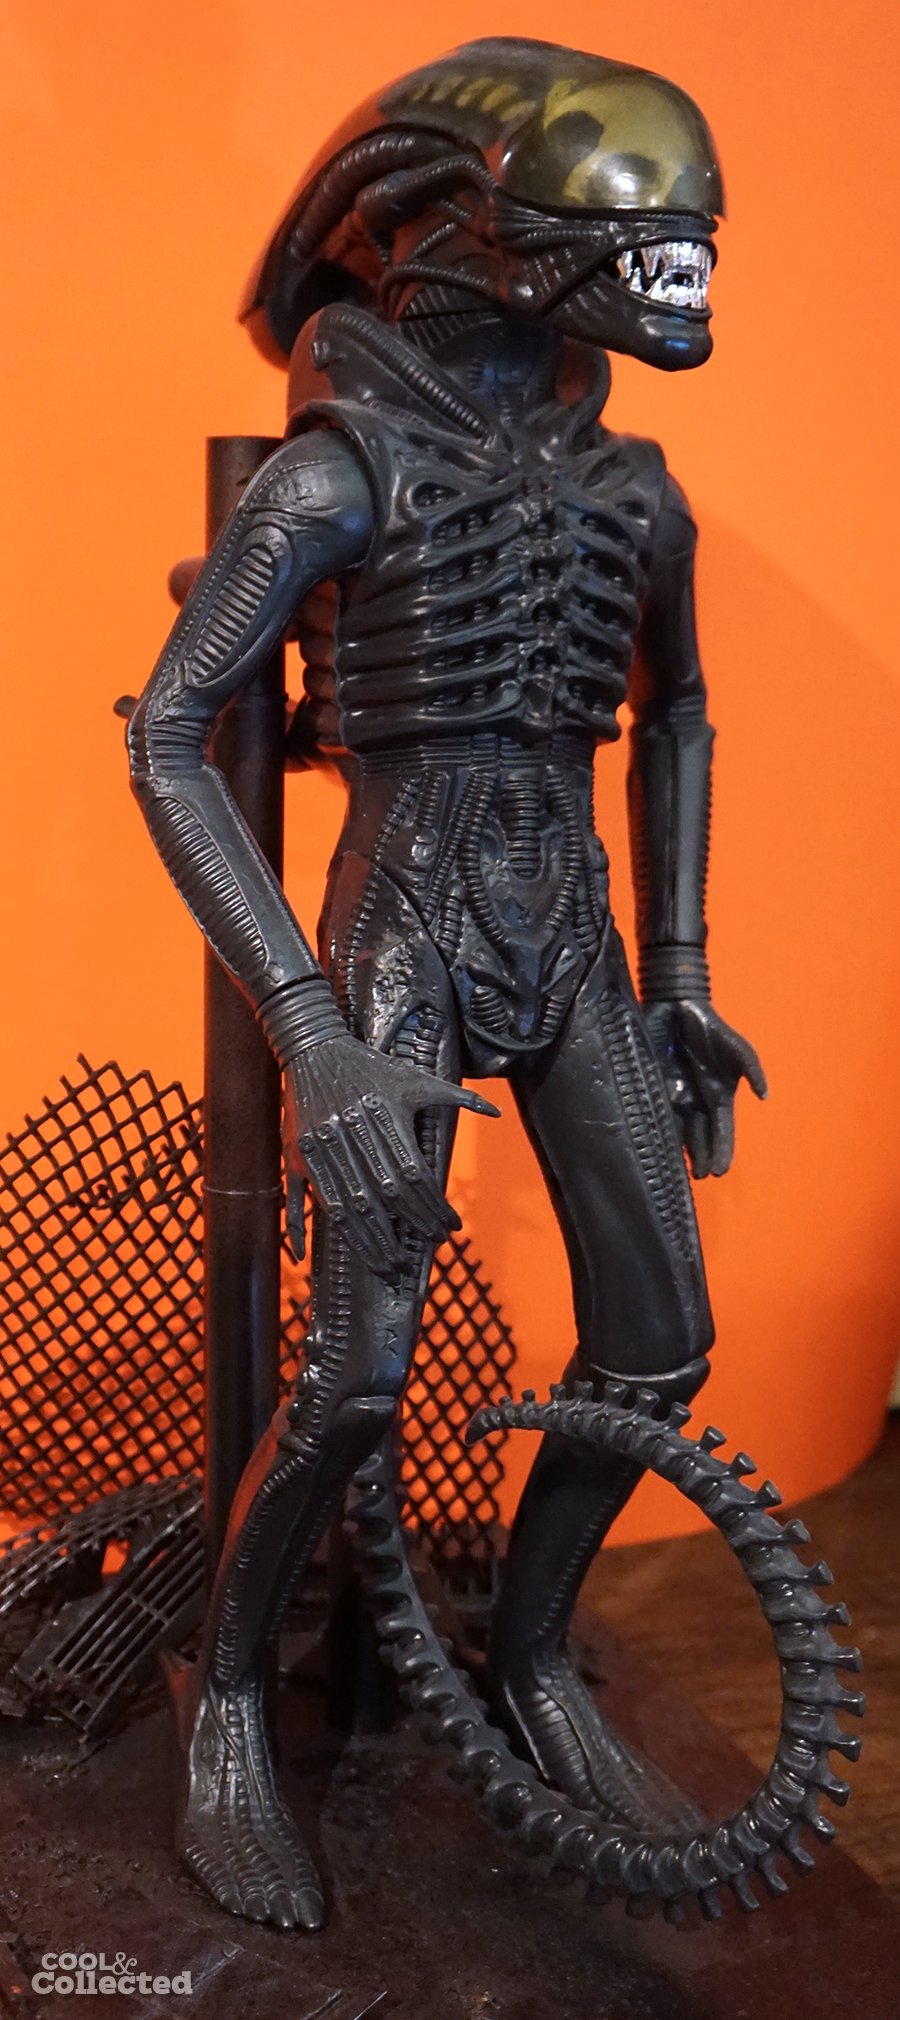 kenner-alien-figure - 1 (1)